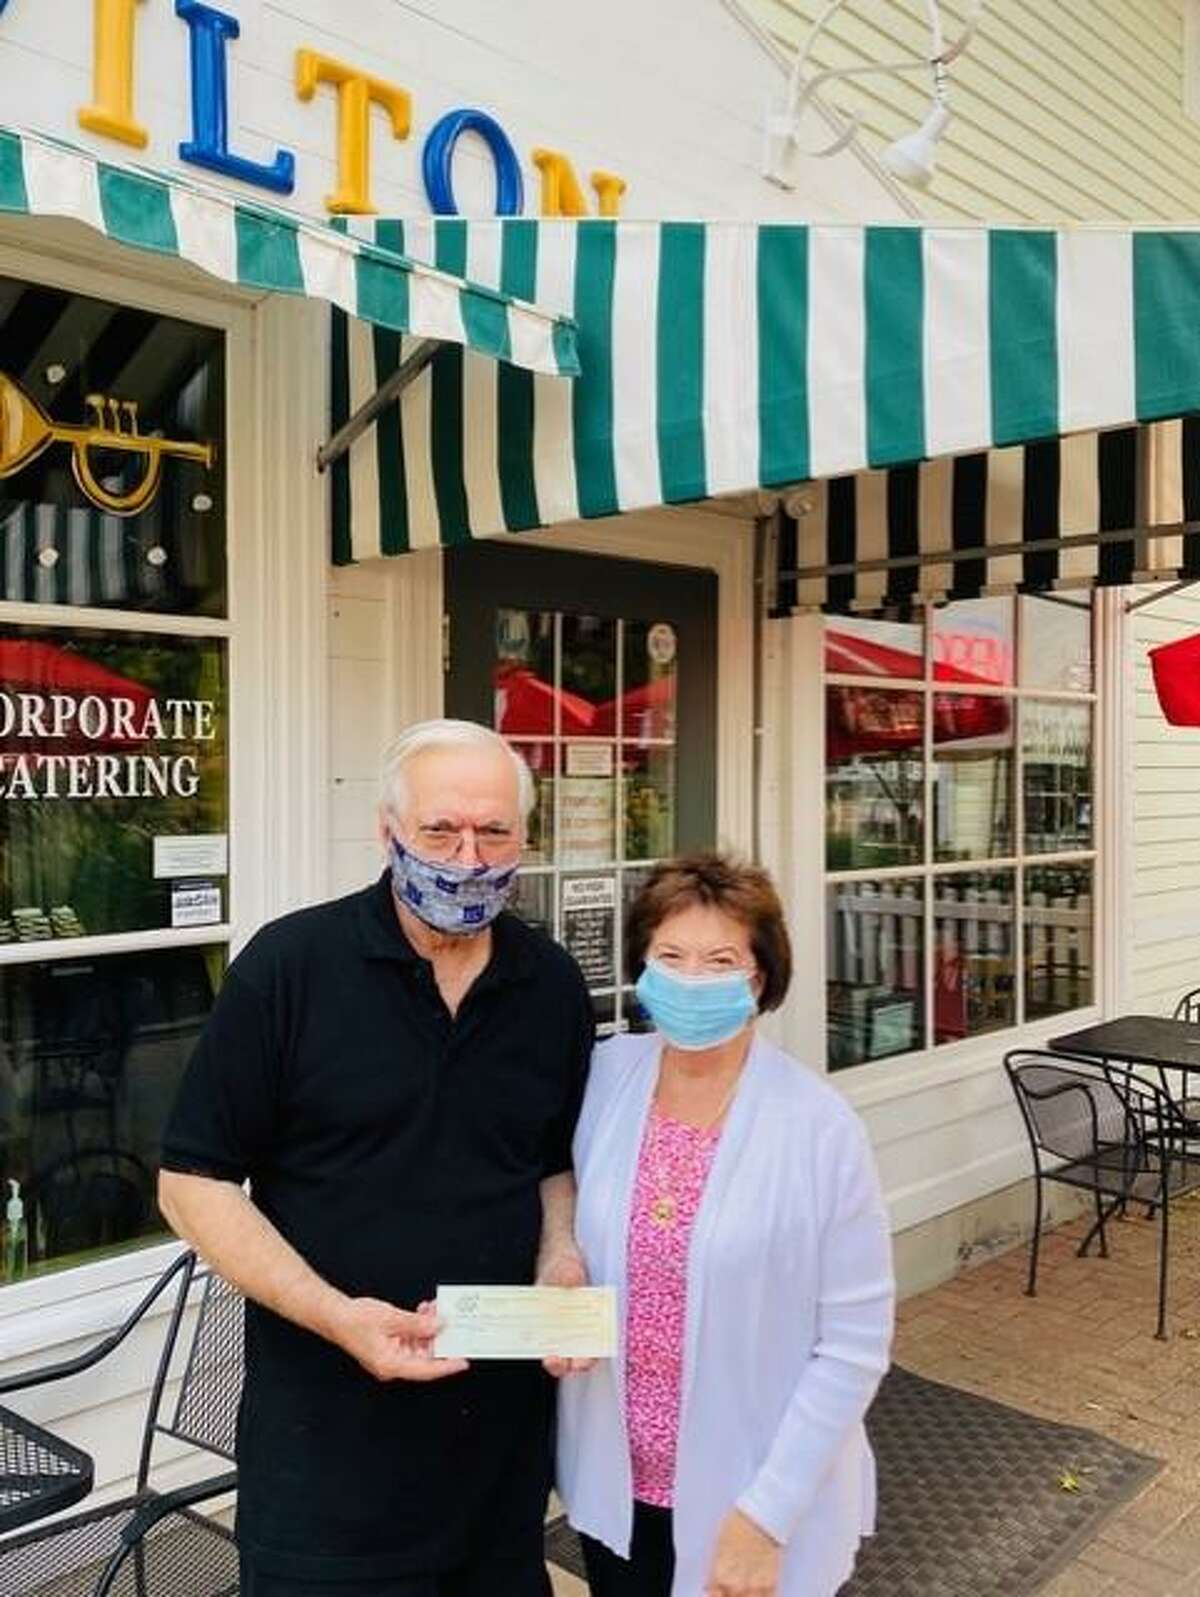 Alfredo LoPresti, manager of Wilton Pizza, presents a check for $150 to Sally Maraventano Kirmser, president of Stay at Home in Wilton after a pizza night where 15 percent of the proceeds of orders benefited the charity.